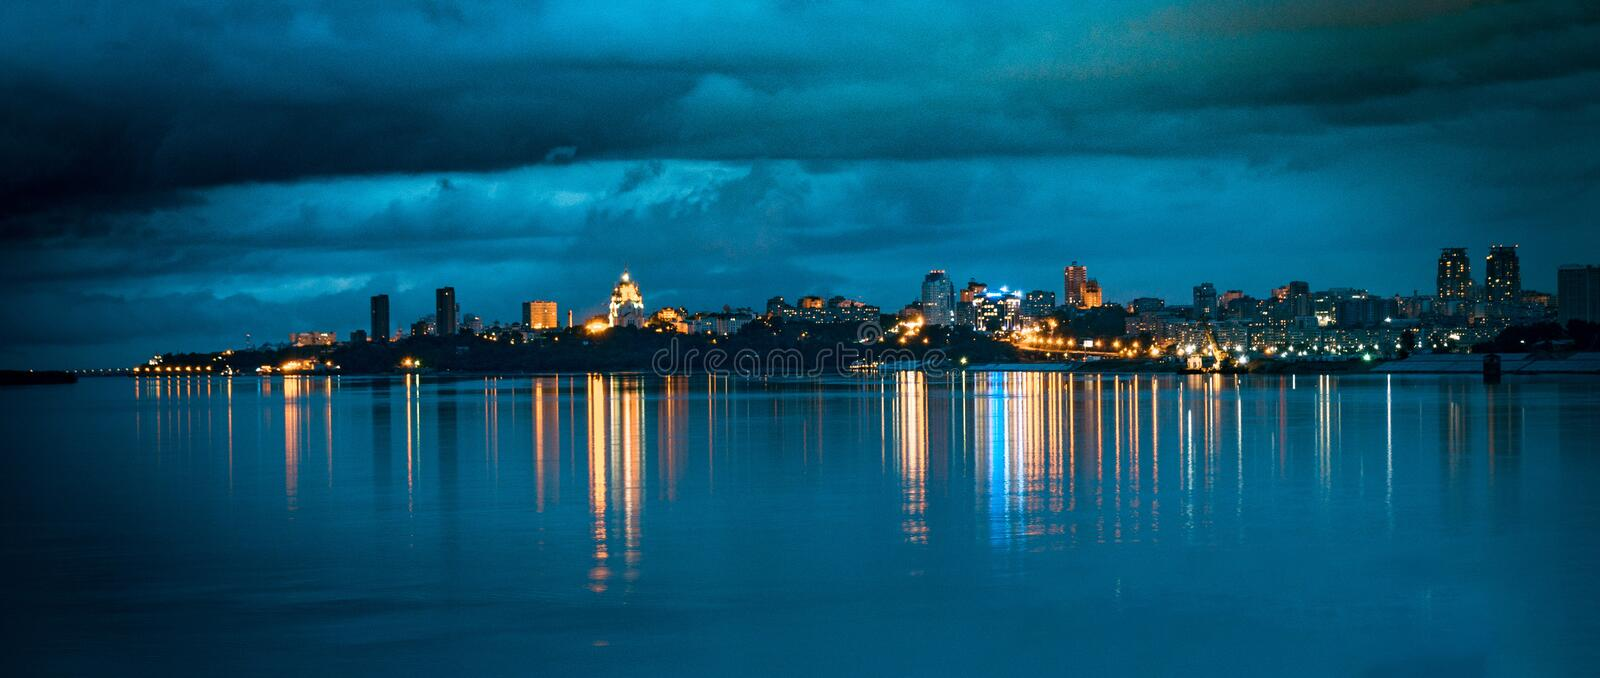 Cityscape: The lights of the night city on the horizon are reflected in smooth water. royalty free stock image